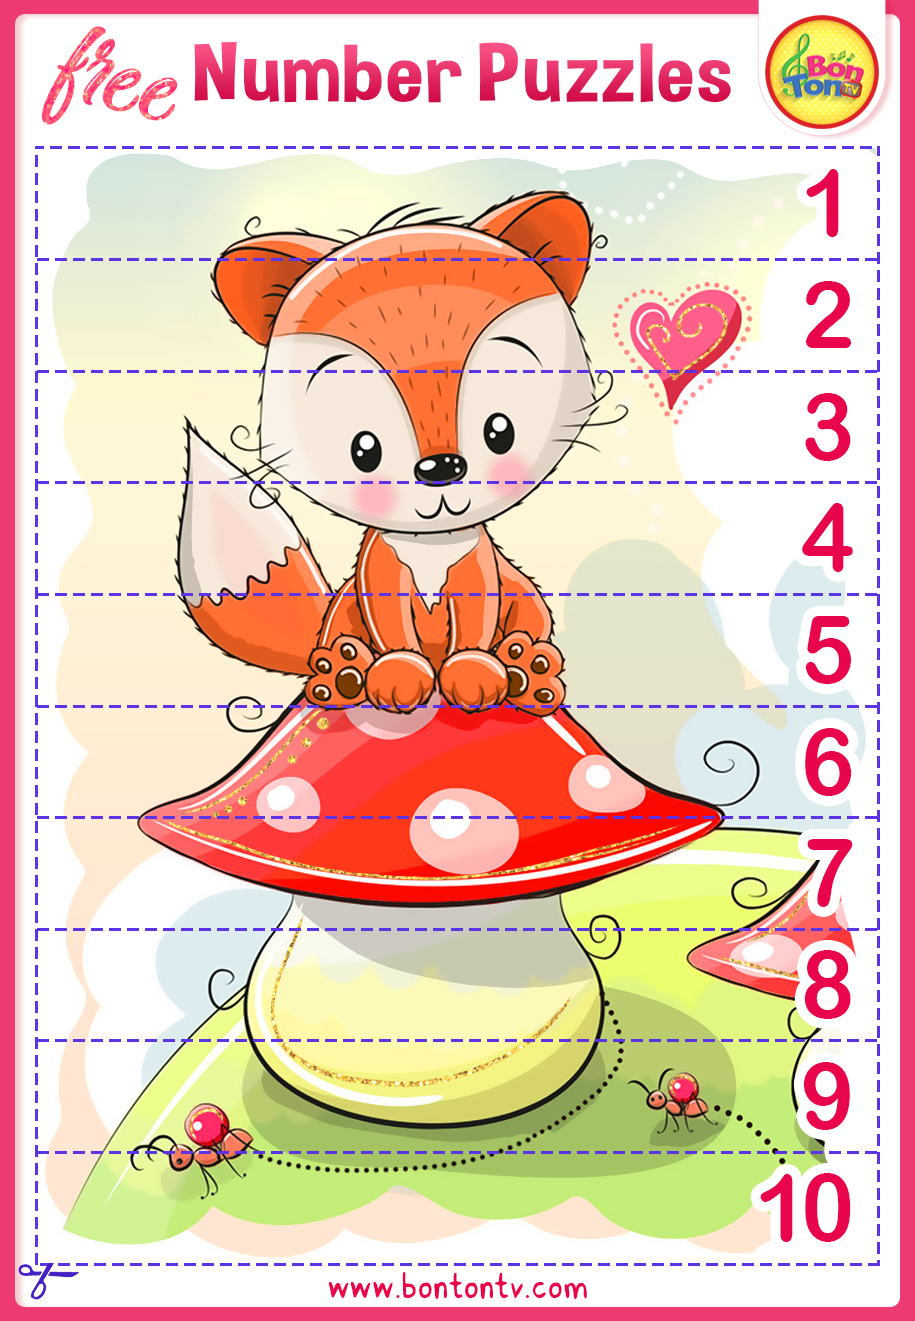 Number Puzzles - Free Preschool Printables For Kids - Bontontv - Printable Puzzles For Preschoolers